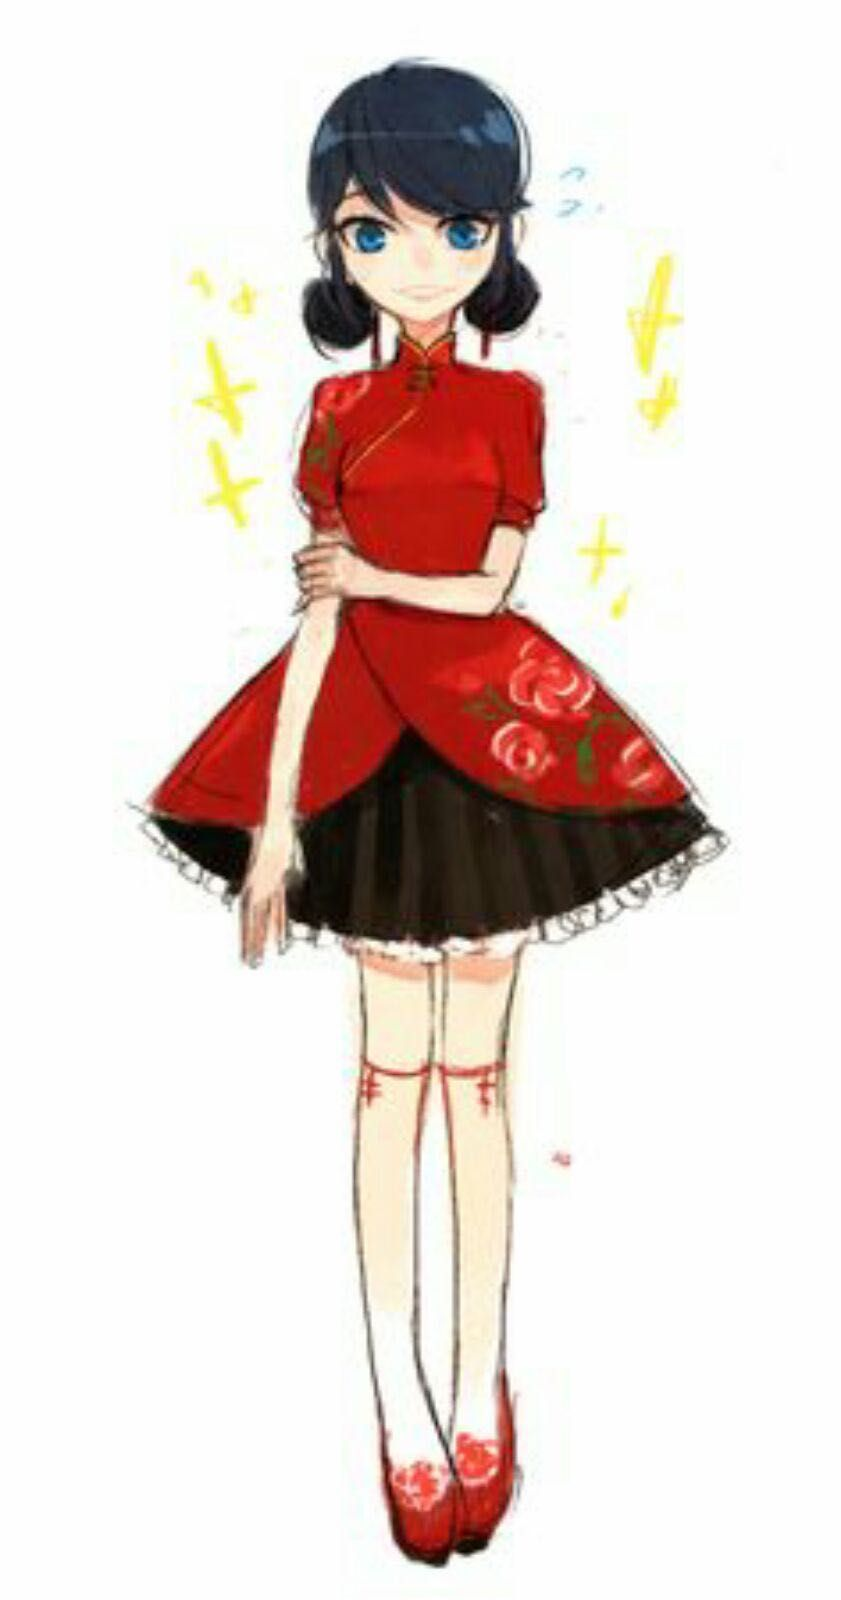 A Miraculous Love #Wattys2016 - Truth Revealed - #miraculous #revealed #truth #wattys2016 - #Dahlias